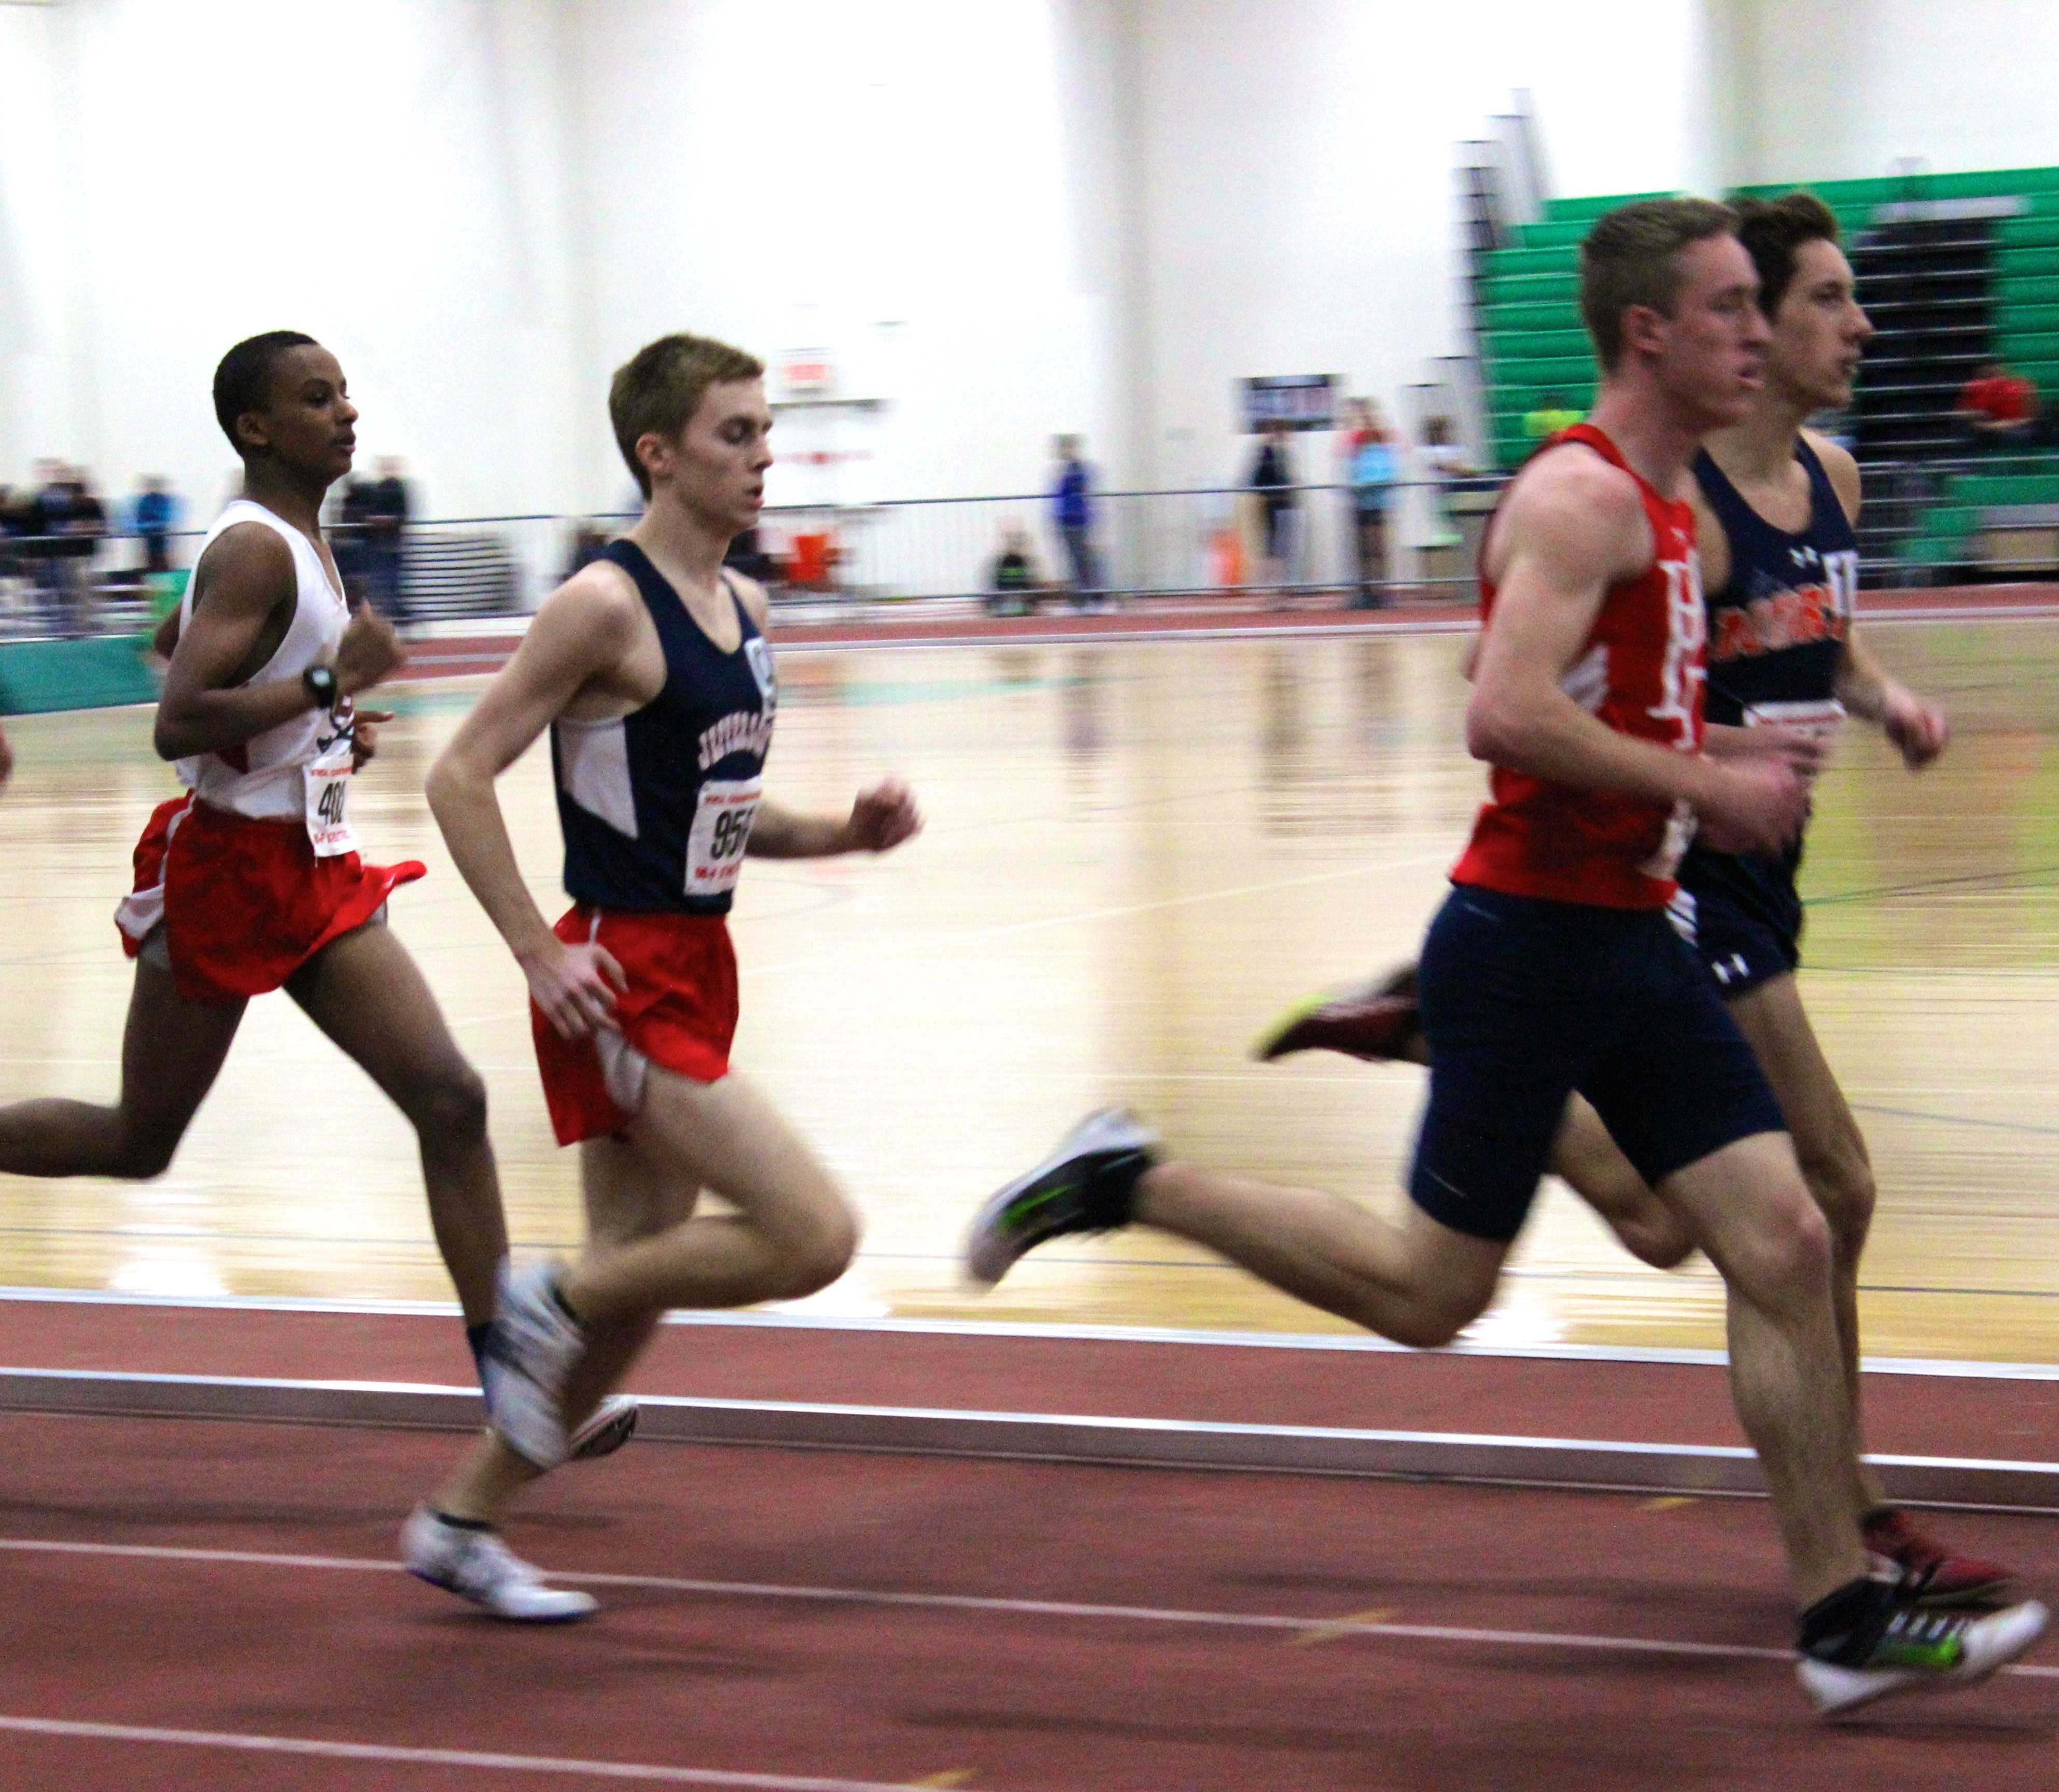 Senior distance runner Nate Foss hung back in the early laps, then overcame his competitors to win third overall in the 1600 meter race.